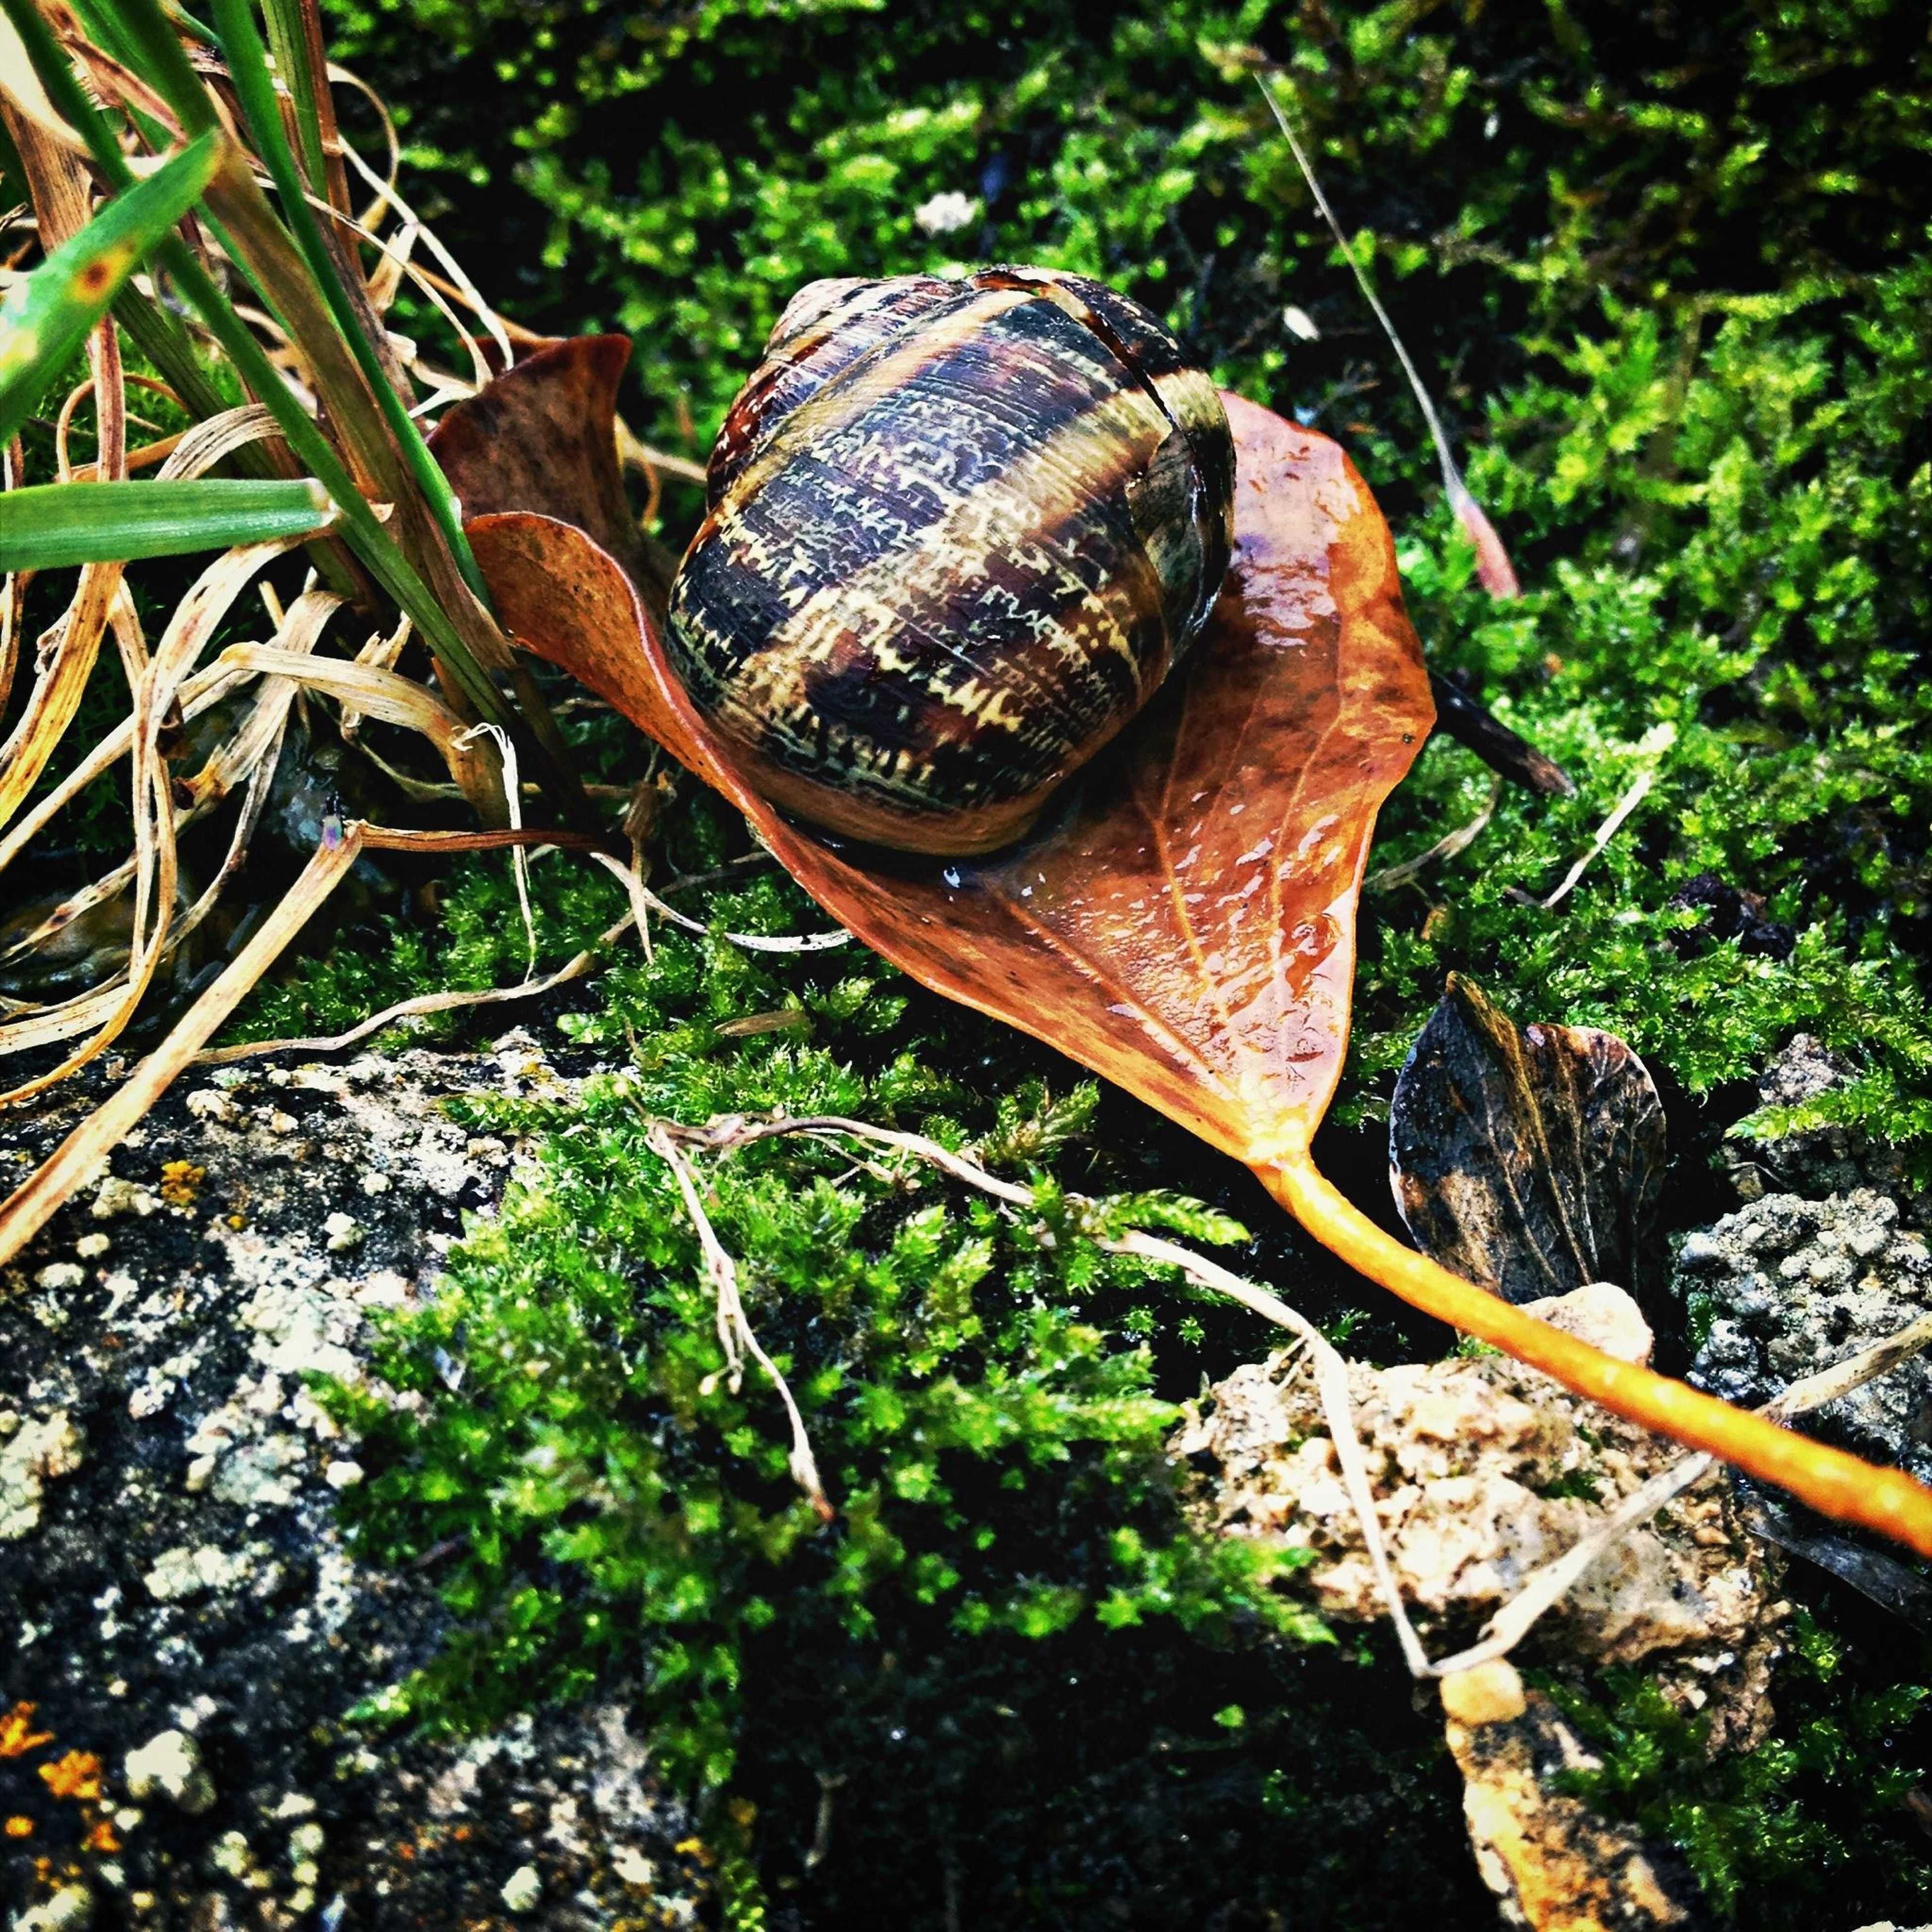 leaf, close-up, mushroom, high angle view, growth, plant, nature, fungus, wood - material, forest, brown, green color, field, day, ground, outdoors, animal shell, no people, snail, abandoned